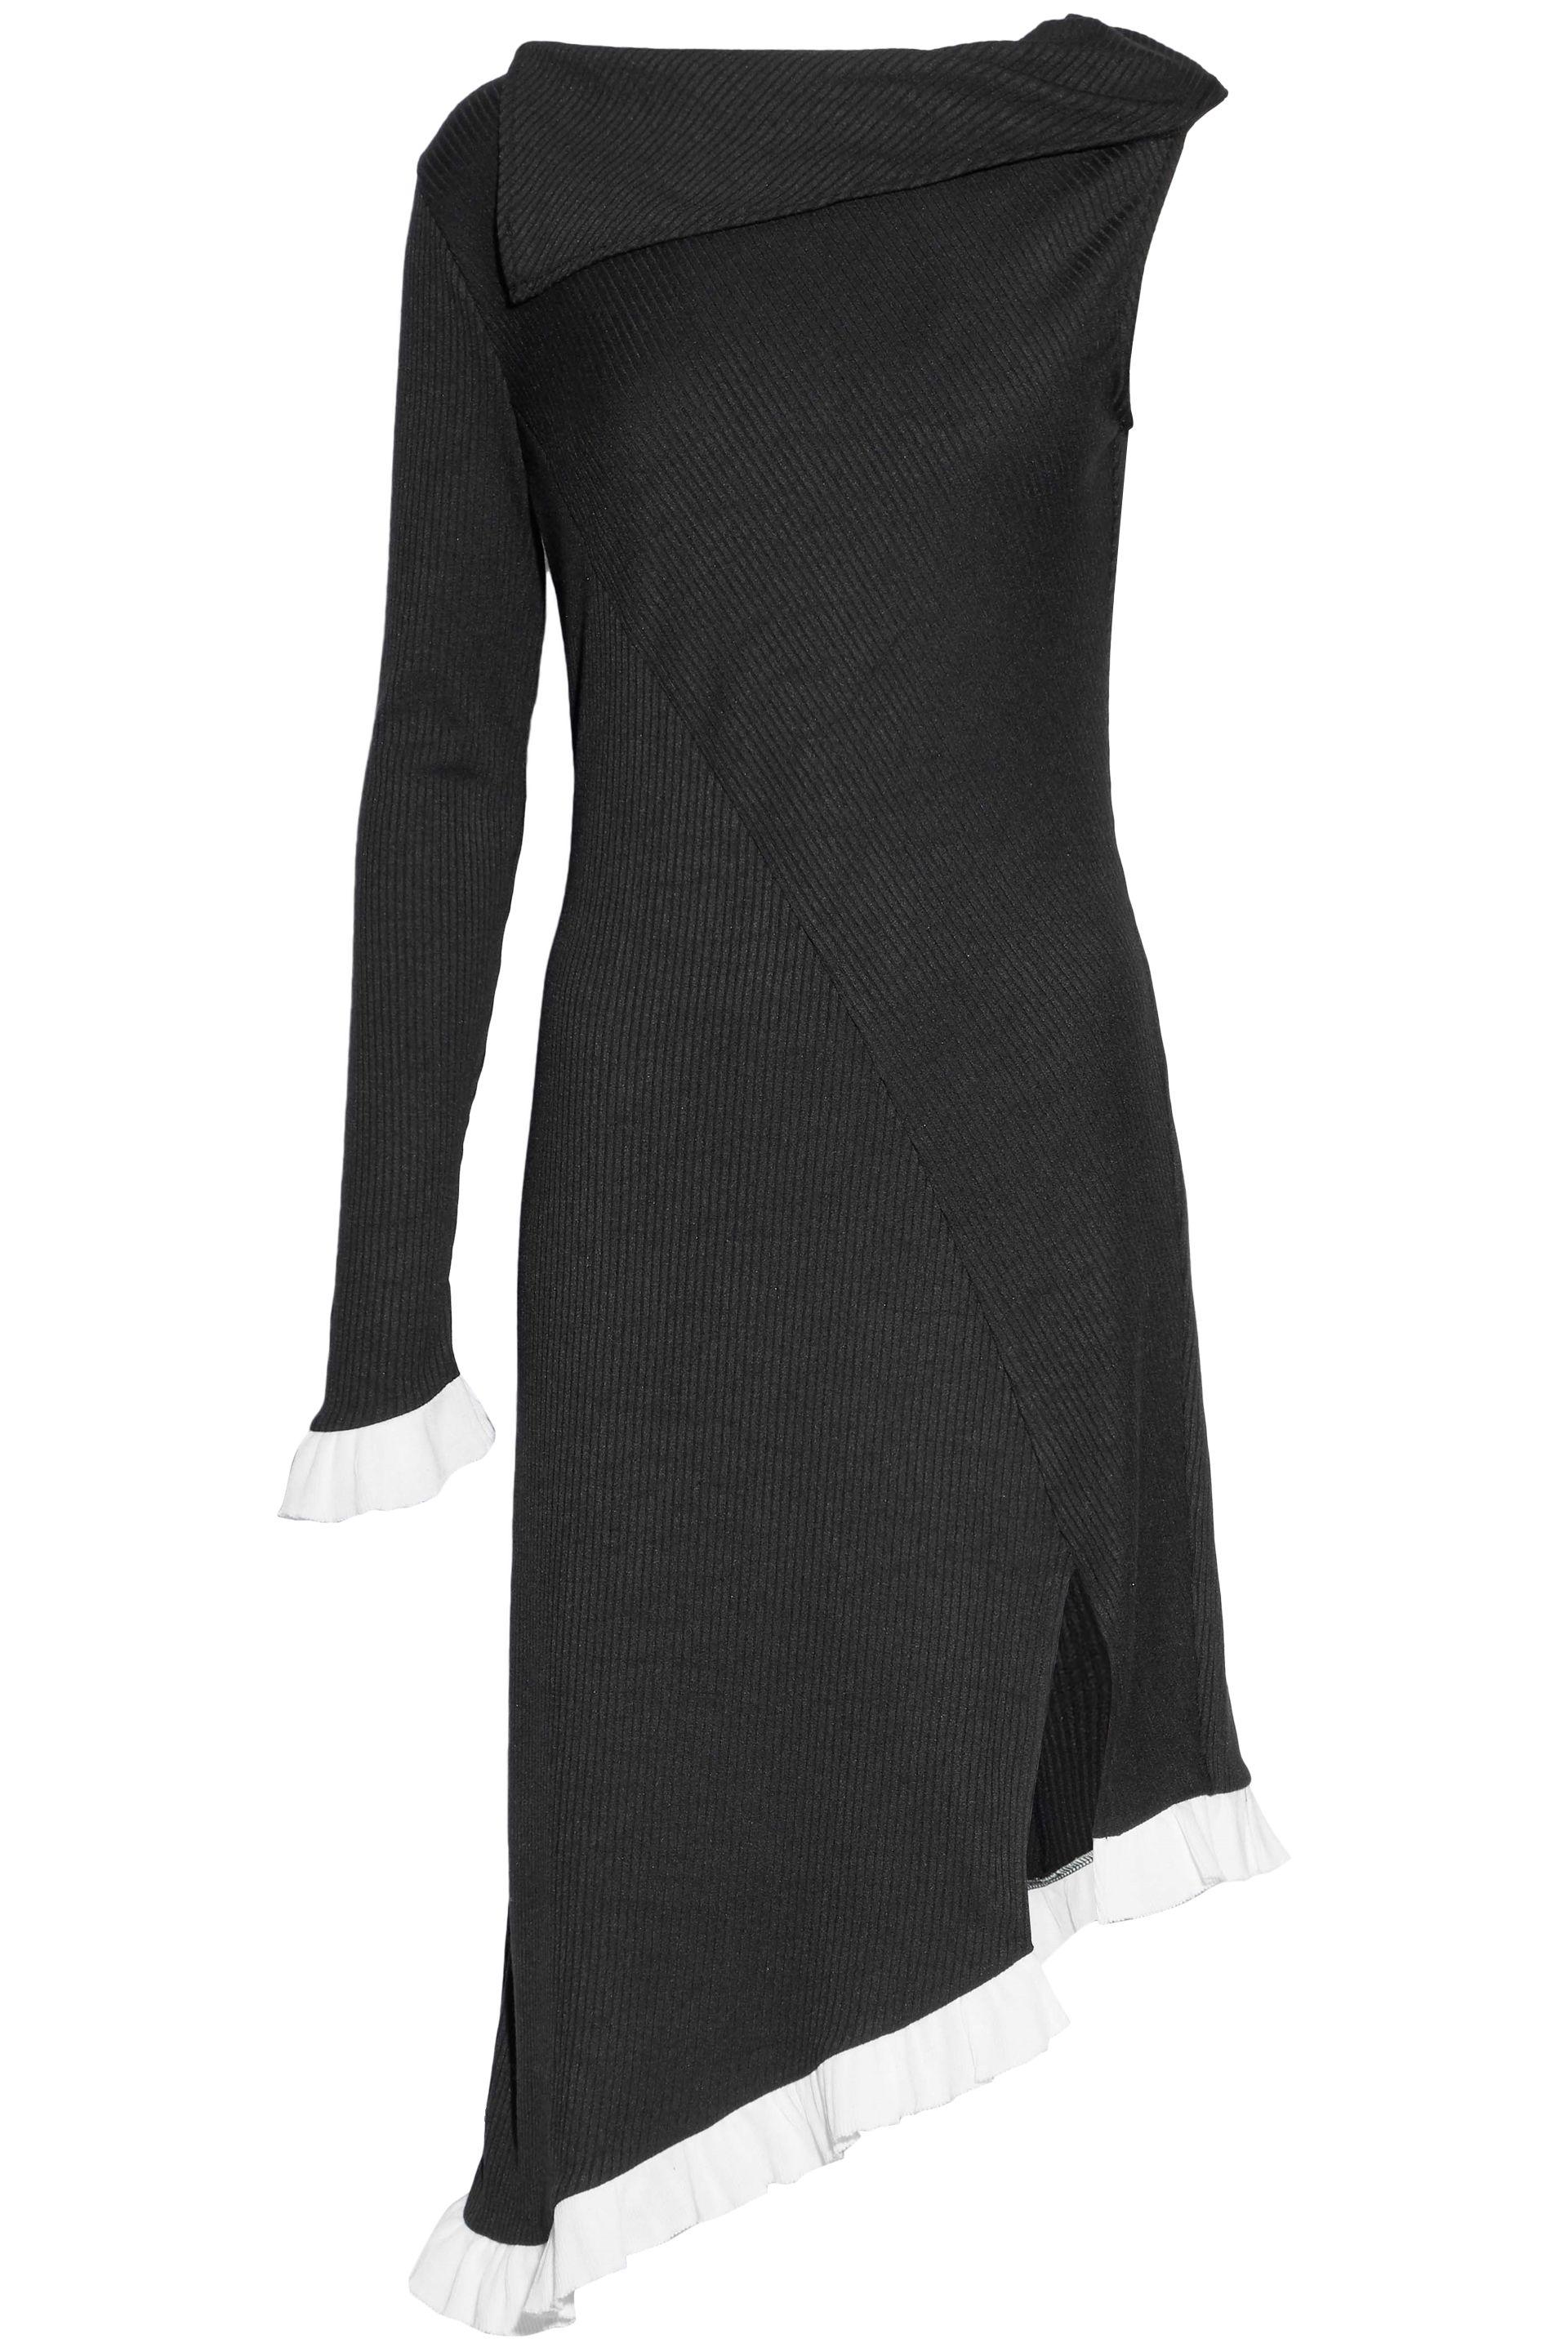 W118 By Walter Baker Woman Erik Cutout Ribbed Cotton-blend Midi Dress Black Size L W118 by Walter Baker Enjoy For Sale Fashion Style Cheap Price Choice Exclusive Sale Online Quality Free Shipping For Sale whMnbu